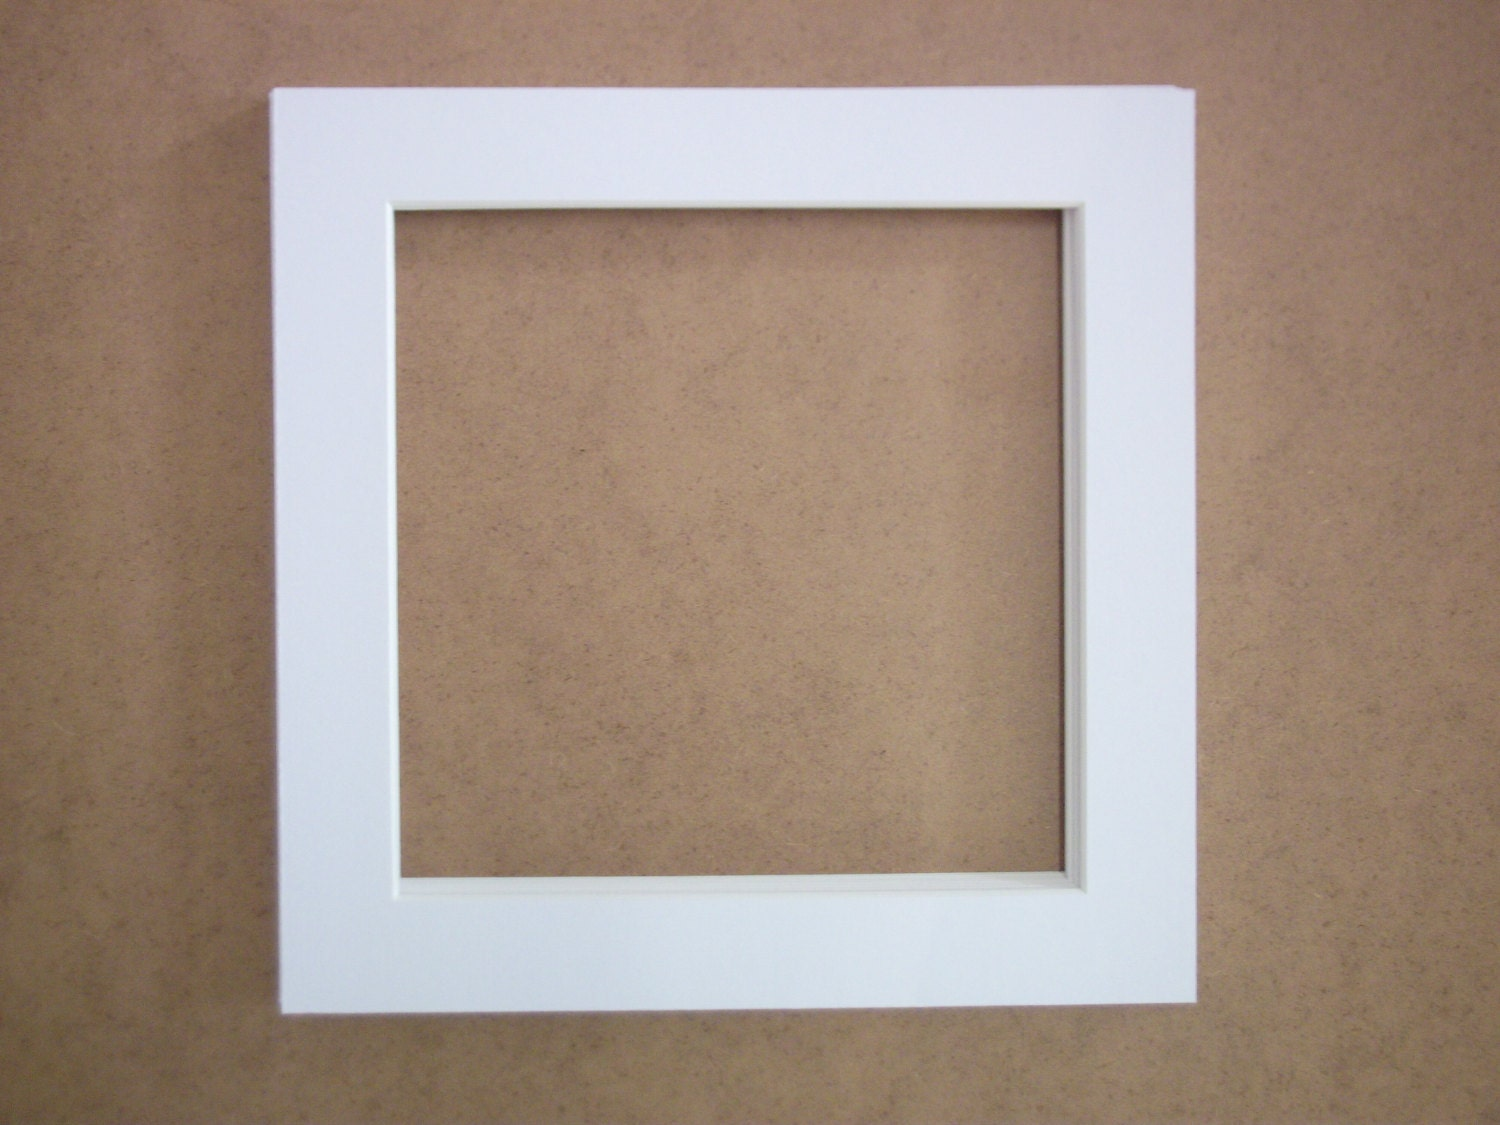 mats and frames square picture frame 10 x 10 white frame 10 x 10 frame 10 x 10 picture frame frame 10 x 10 simple white frame - White Square Frames